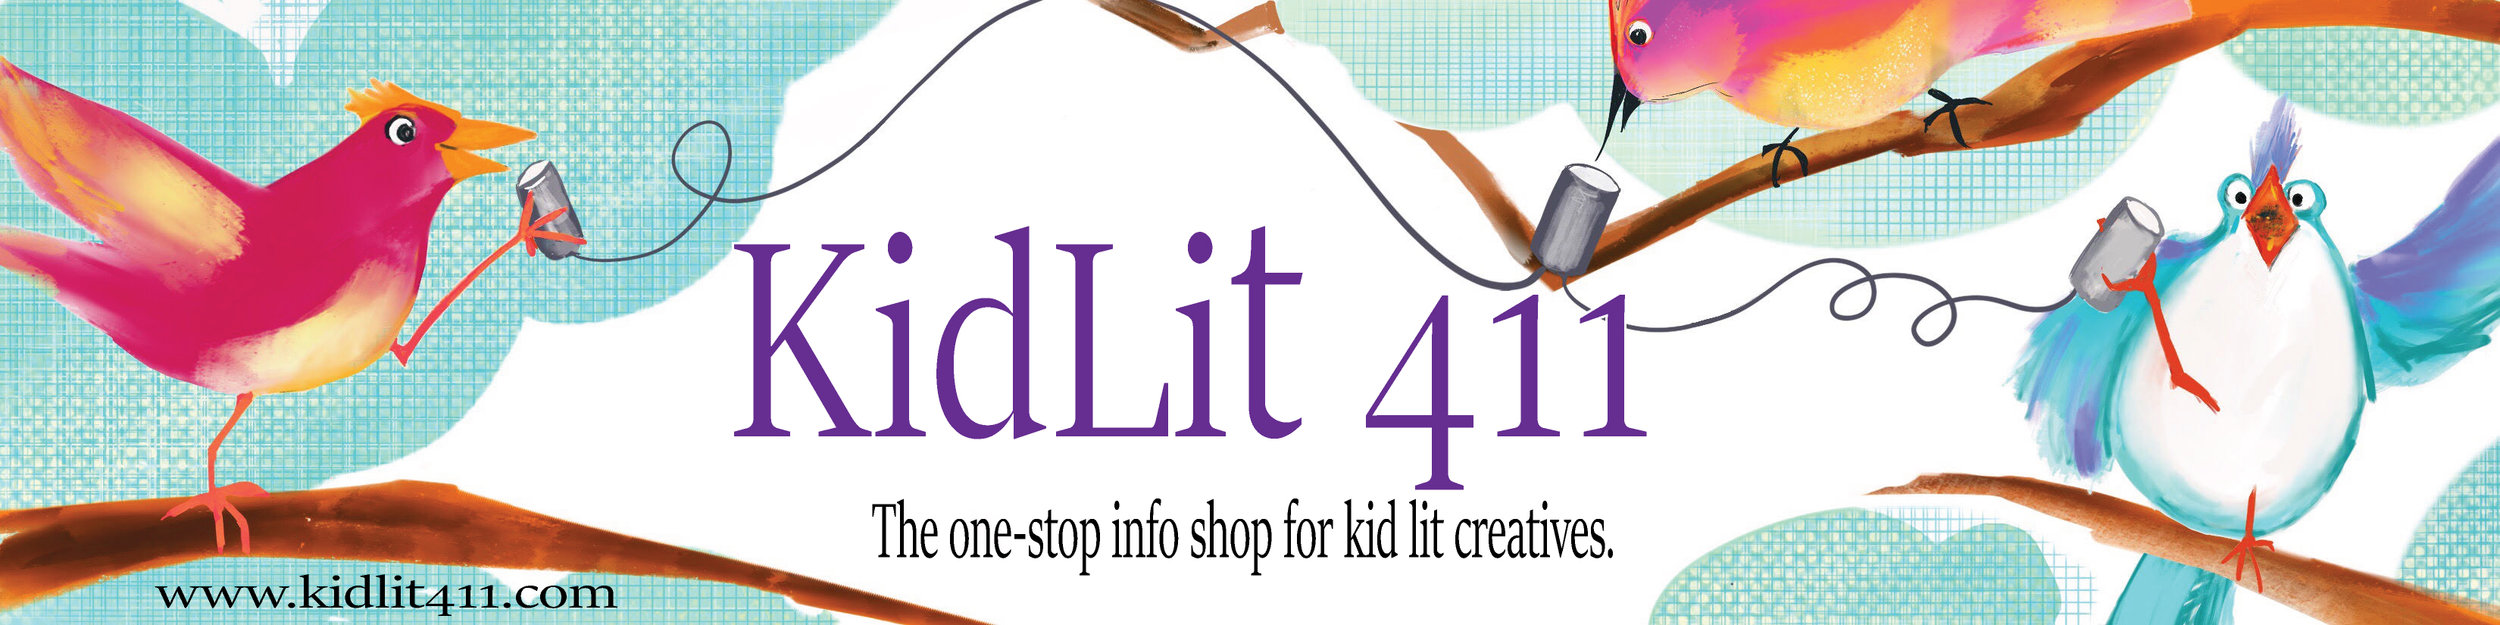 Second Place in the Kidlit411 banner competition!